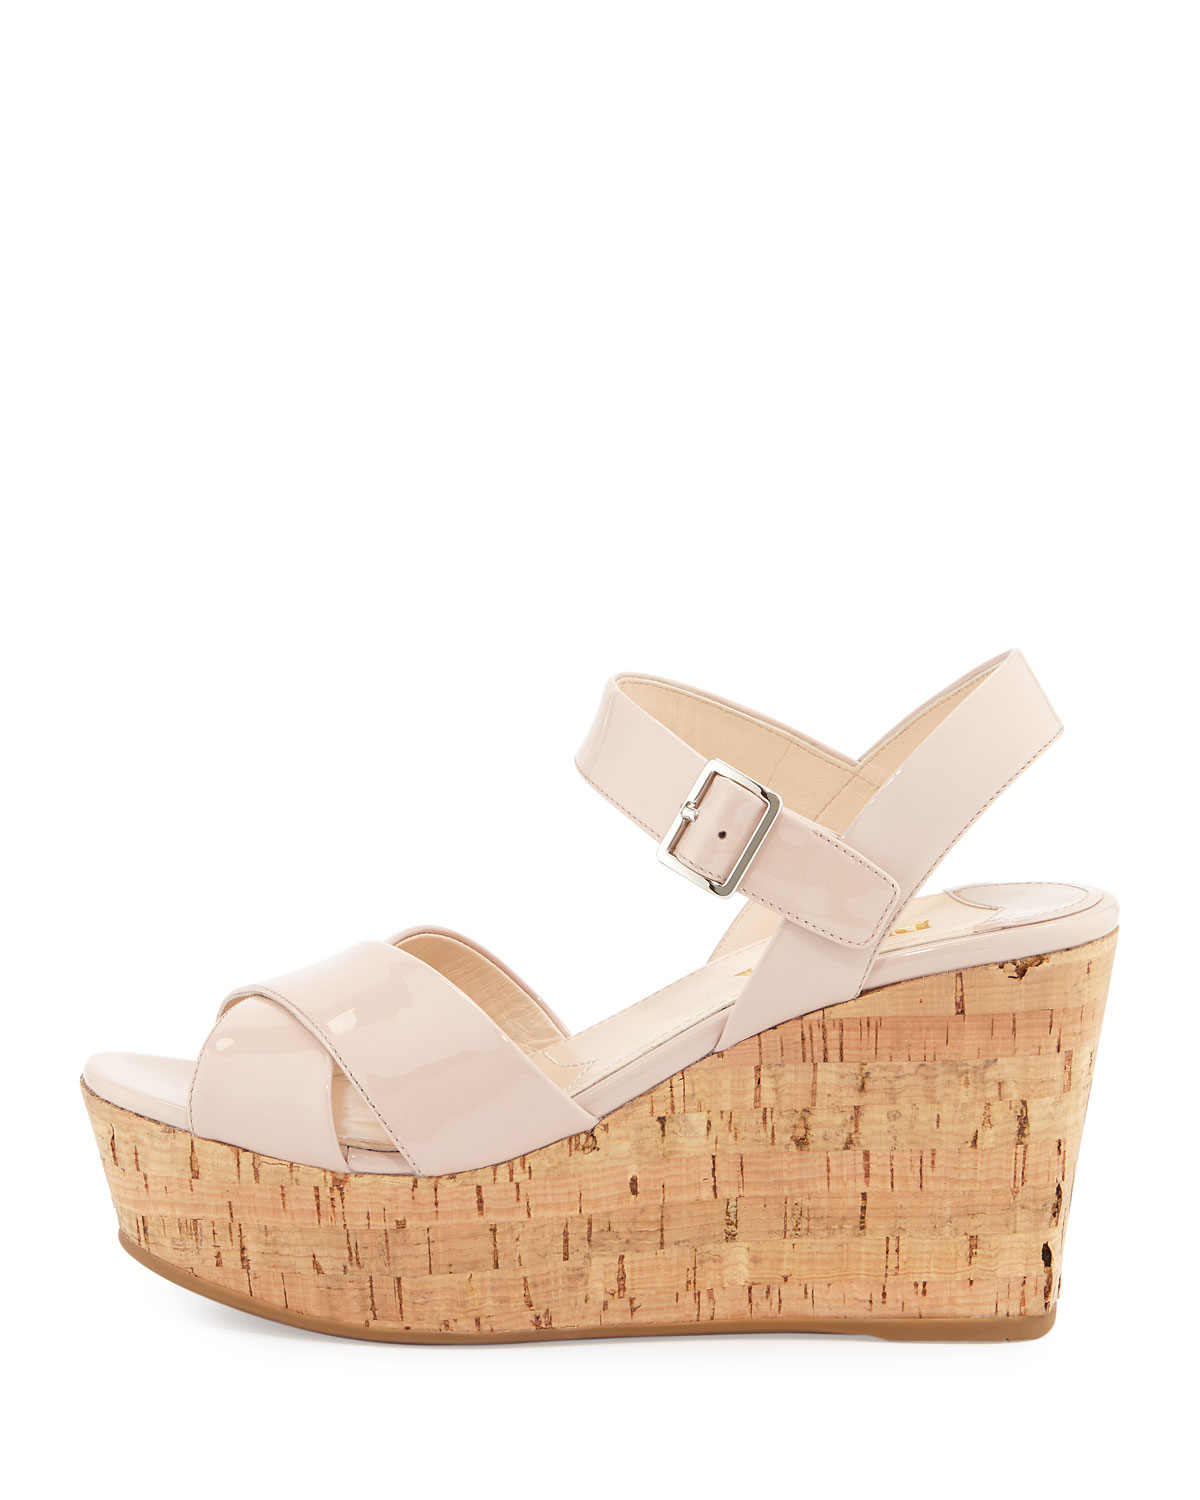 5a0393c7983 Lyst - Prada Patent Leather Cork Wedge Sandal in Natural